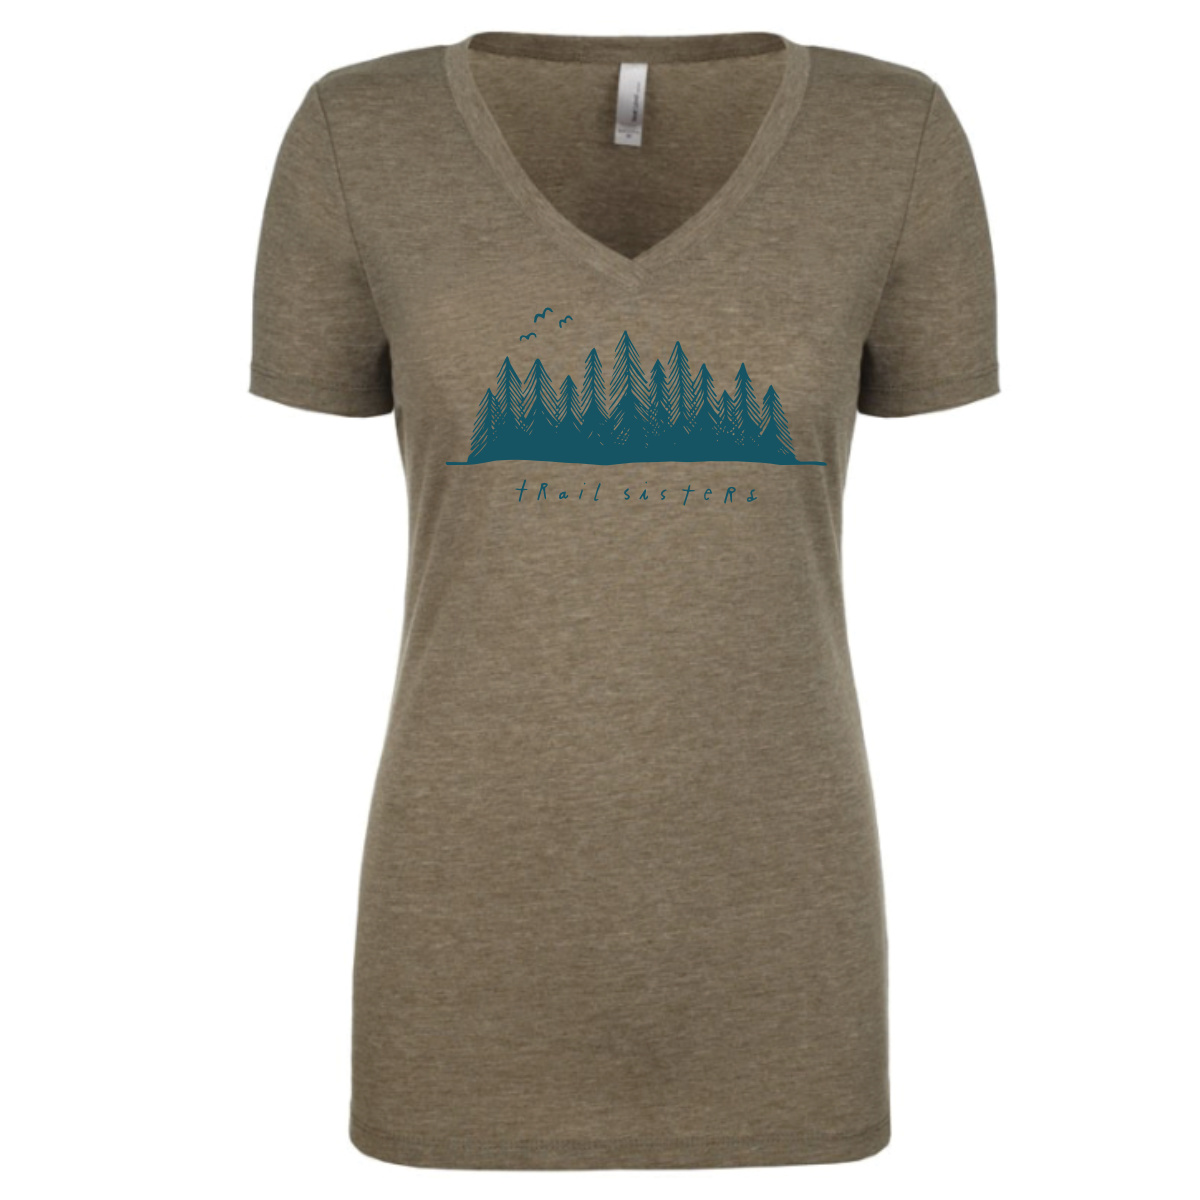 Trail Sisters Forest T-Shirt - Who doesn't love slipping into a super soft tee after a long workout on the trails? Comfort is king, and sporting a rad Trail Sisters Peaks Graphic Tee doesn't hurt either. **Limited Availability**